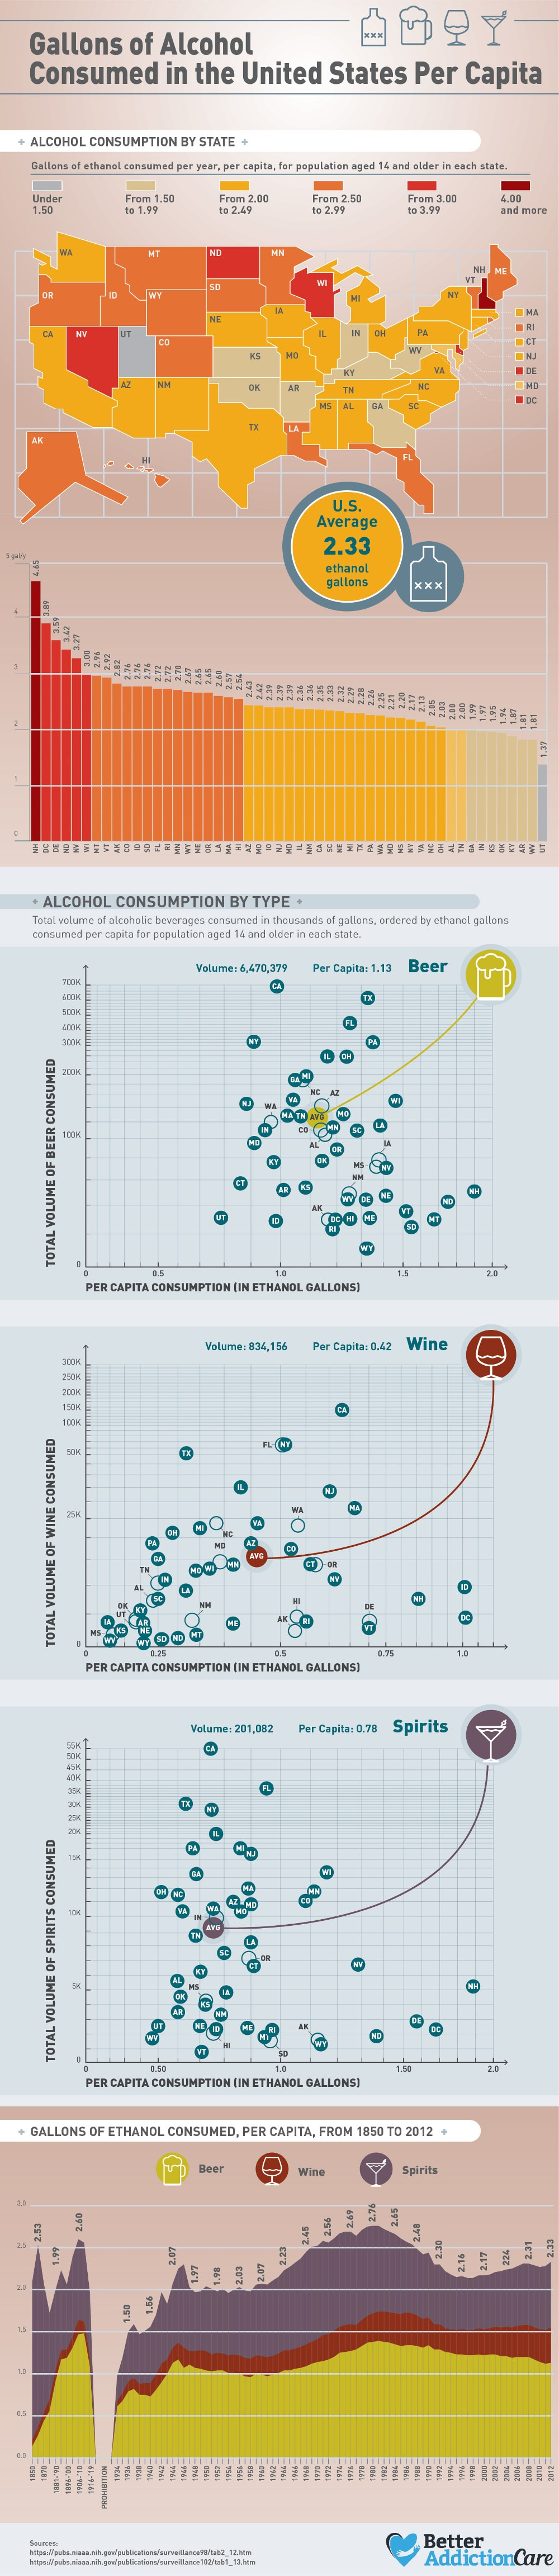 How Much Alcohol Can a Nation Consume? US Per Capita Consumption - Infographic